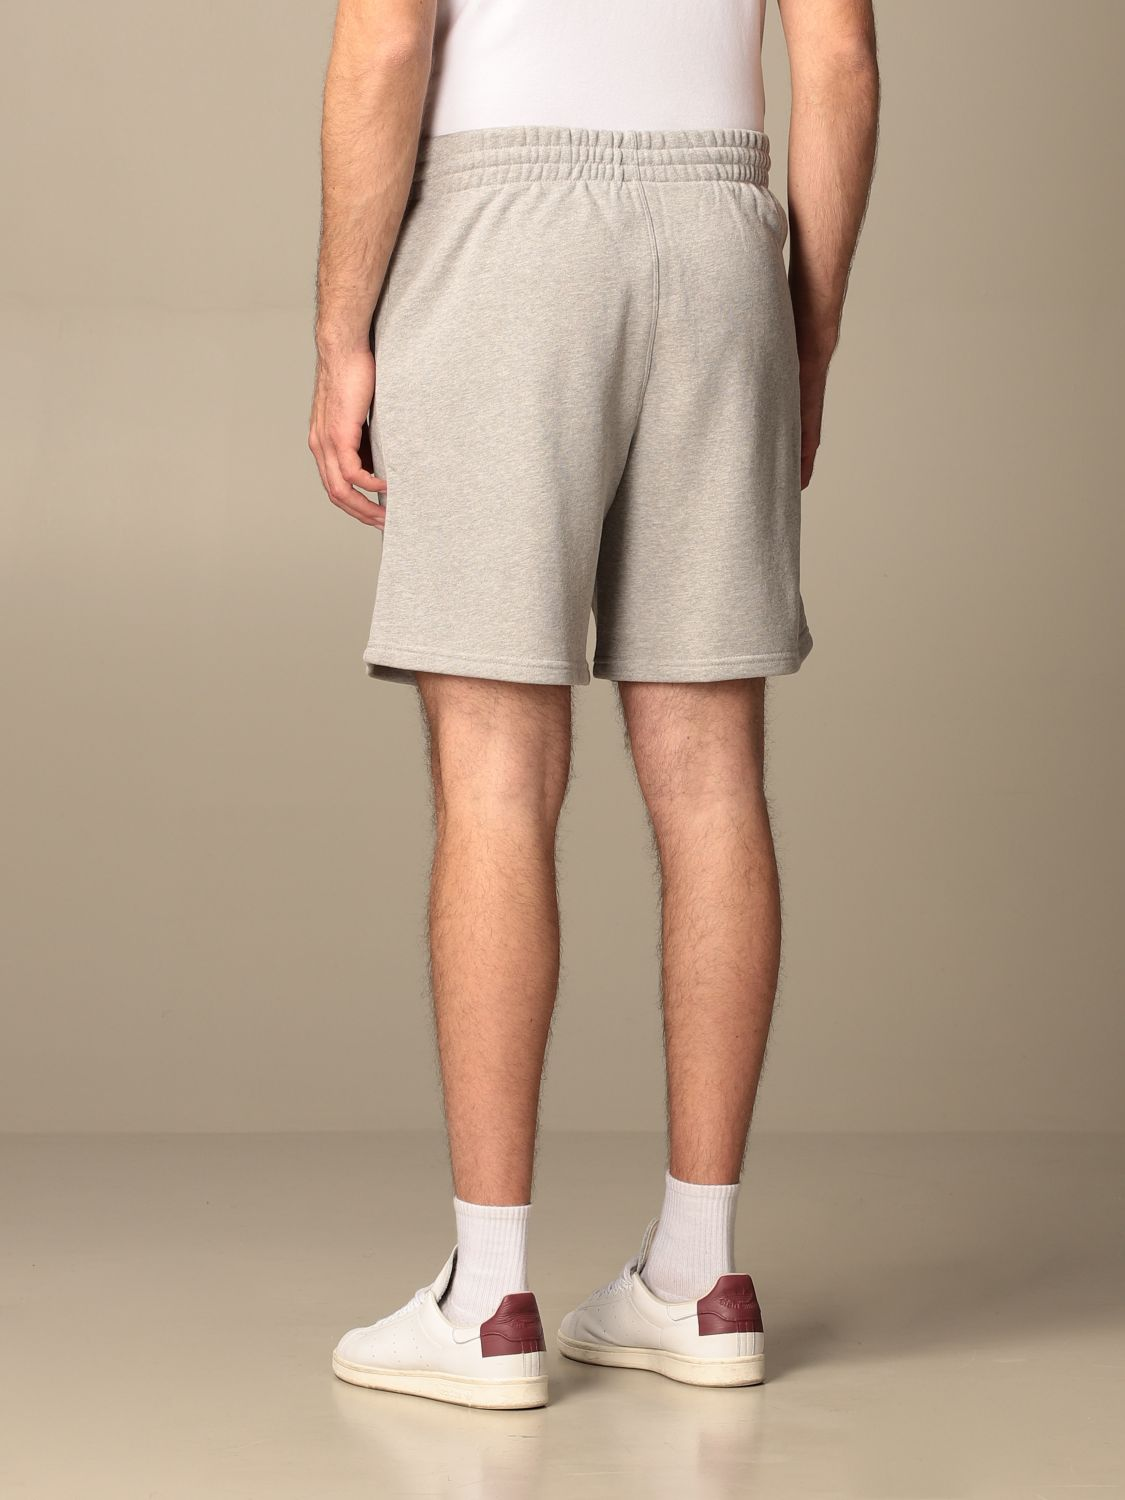 Short Adidas Originals: Adidas Originals jogging shorts with logo grey 2